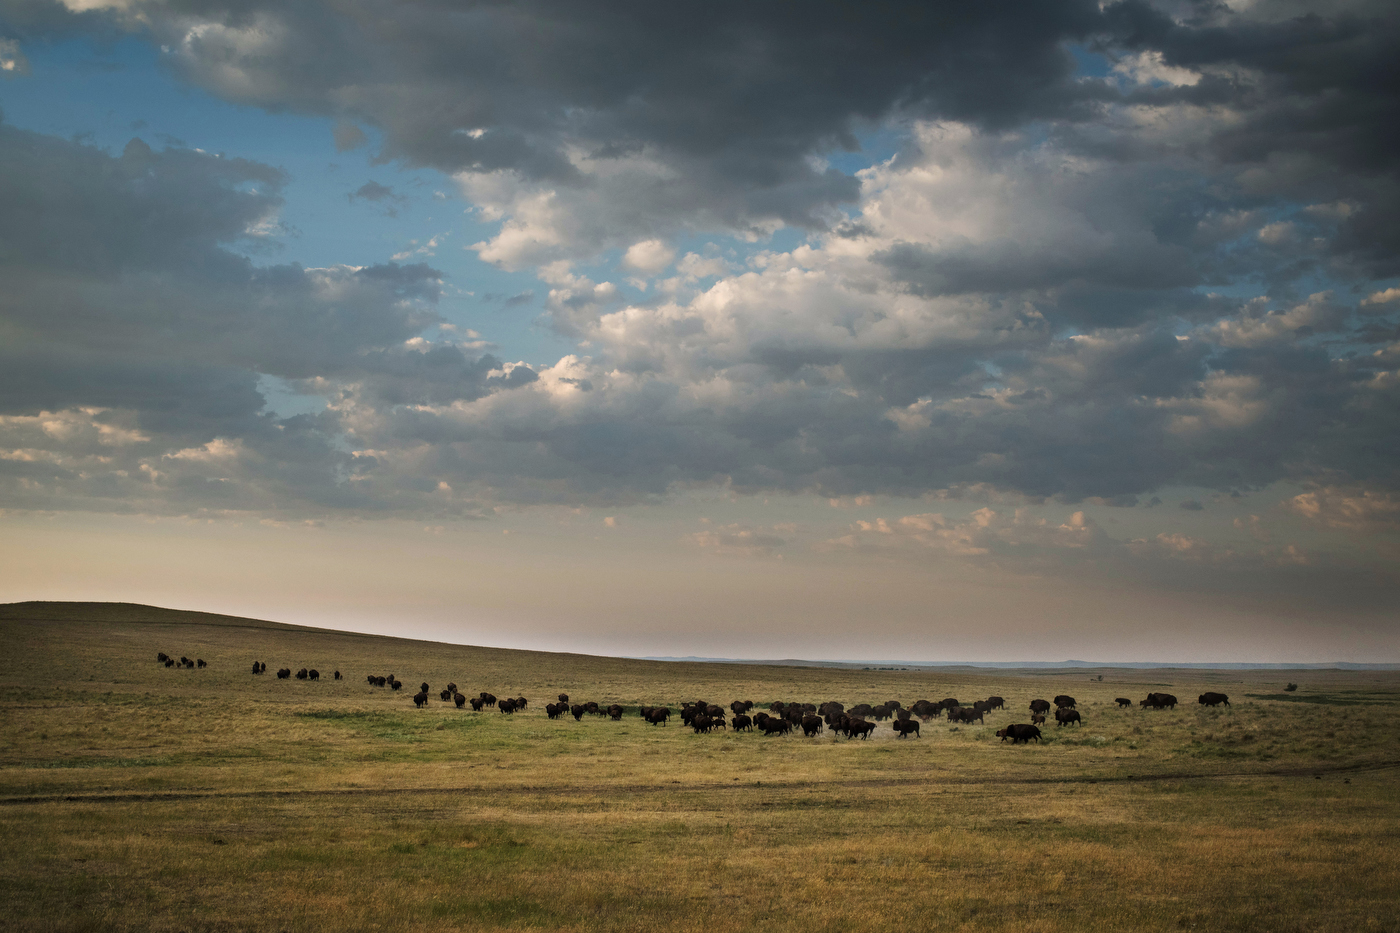 """45°18'29.7""""N 102°11'30.3""""W. 117 miles from the nearest McDonald's.A herd of American plains bison, or buffalo, run across the rolling landscape of Jamie Hepper's ranch between the towns of Meadow and Faith, SD on August 1, 2017. Buffalo, which were historically endemic to the plains states, were hunted to near-extinction causing massive repercussions to the indigenous communities who relied on them for food. Despite this, other ranchers have resisted commercial buffalo ranching, equating them to be as harmful to local cattle herds as wolves."""